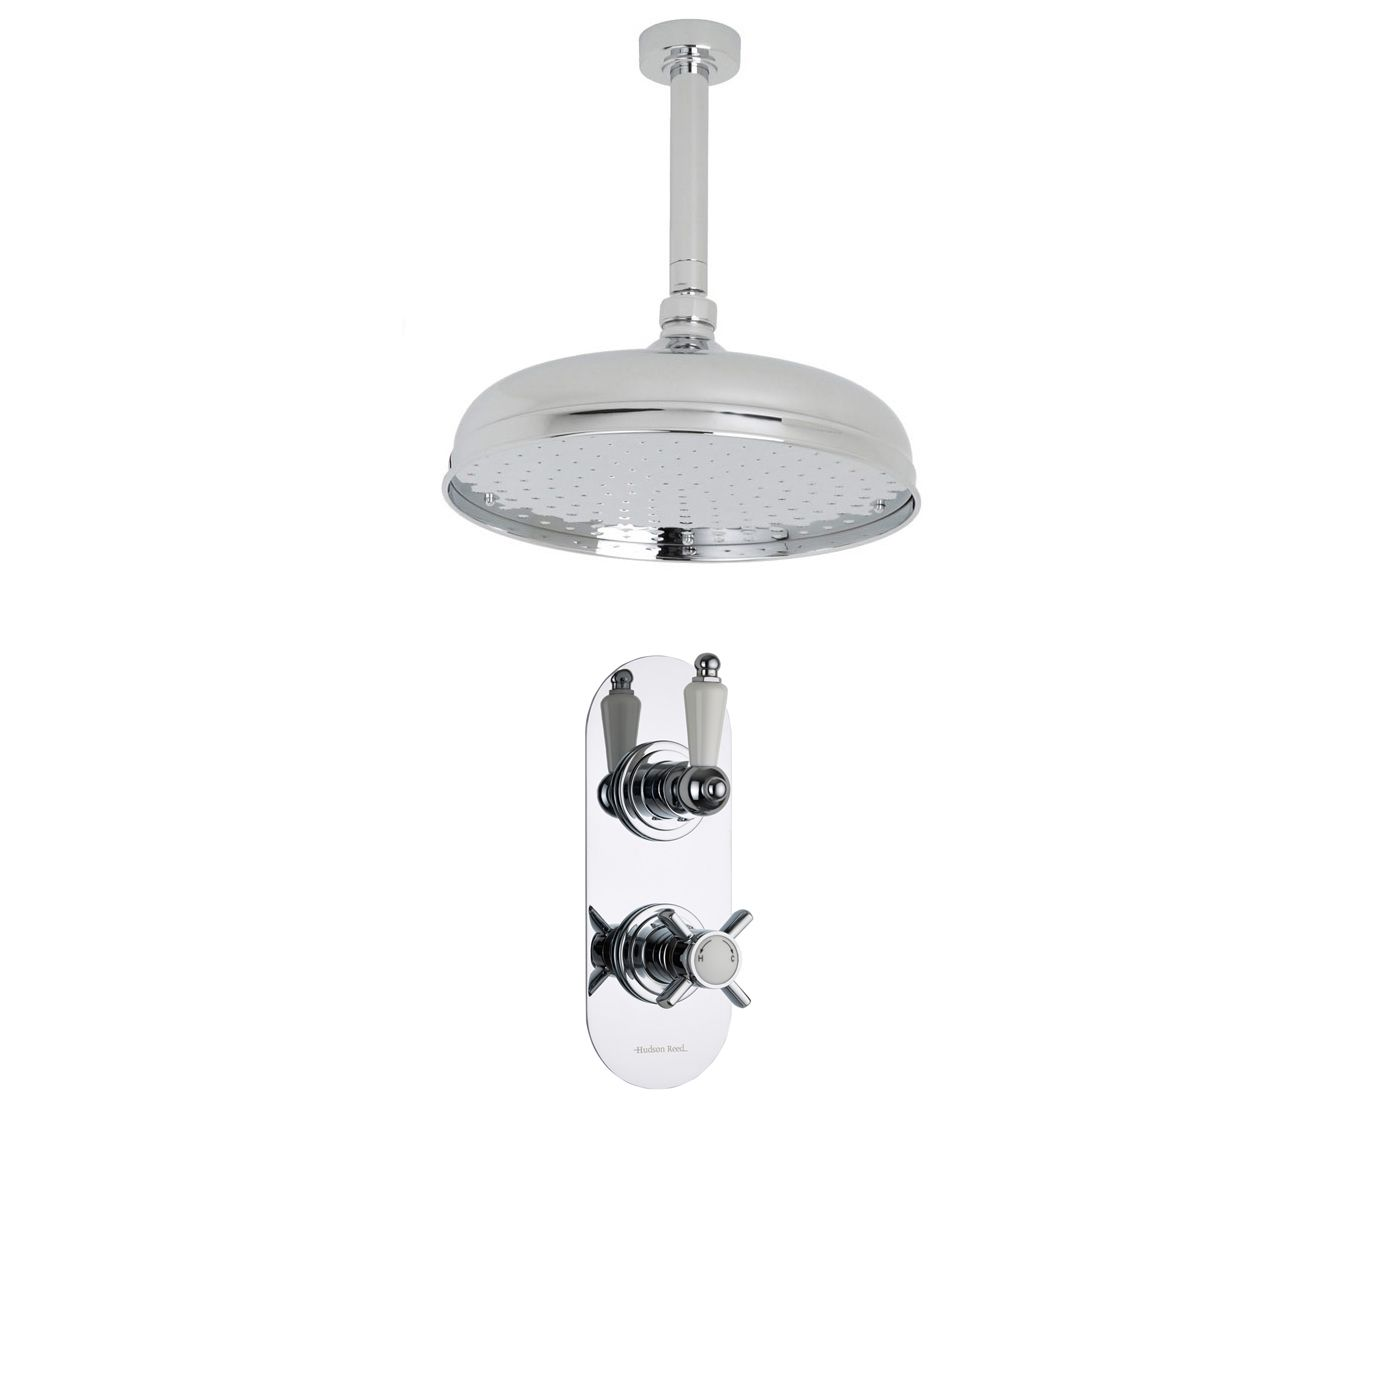 "Beaumont Thermostatic 1 Outlet Shower System with 12"" Apron Head & Ceiling Arm"